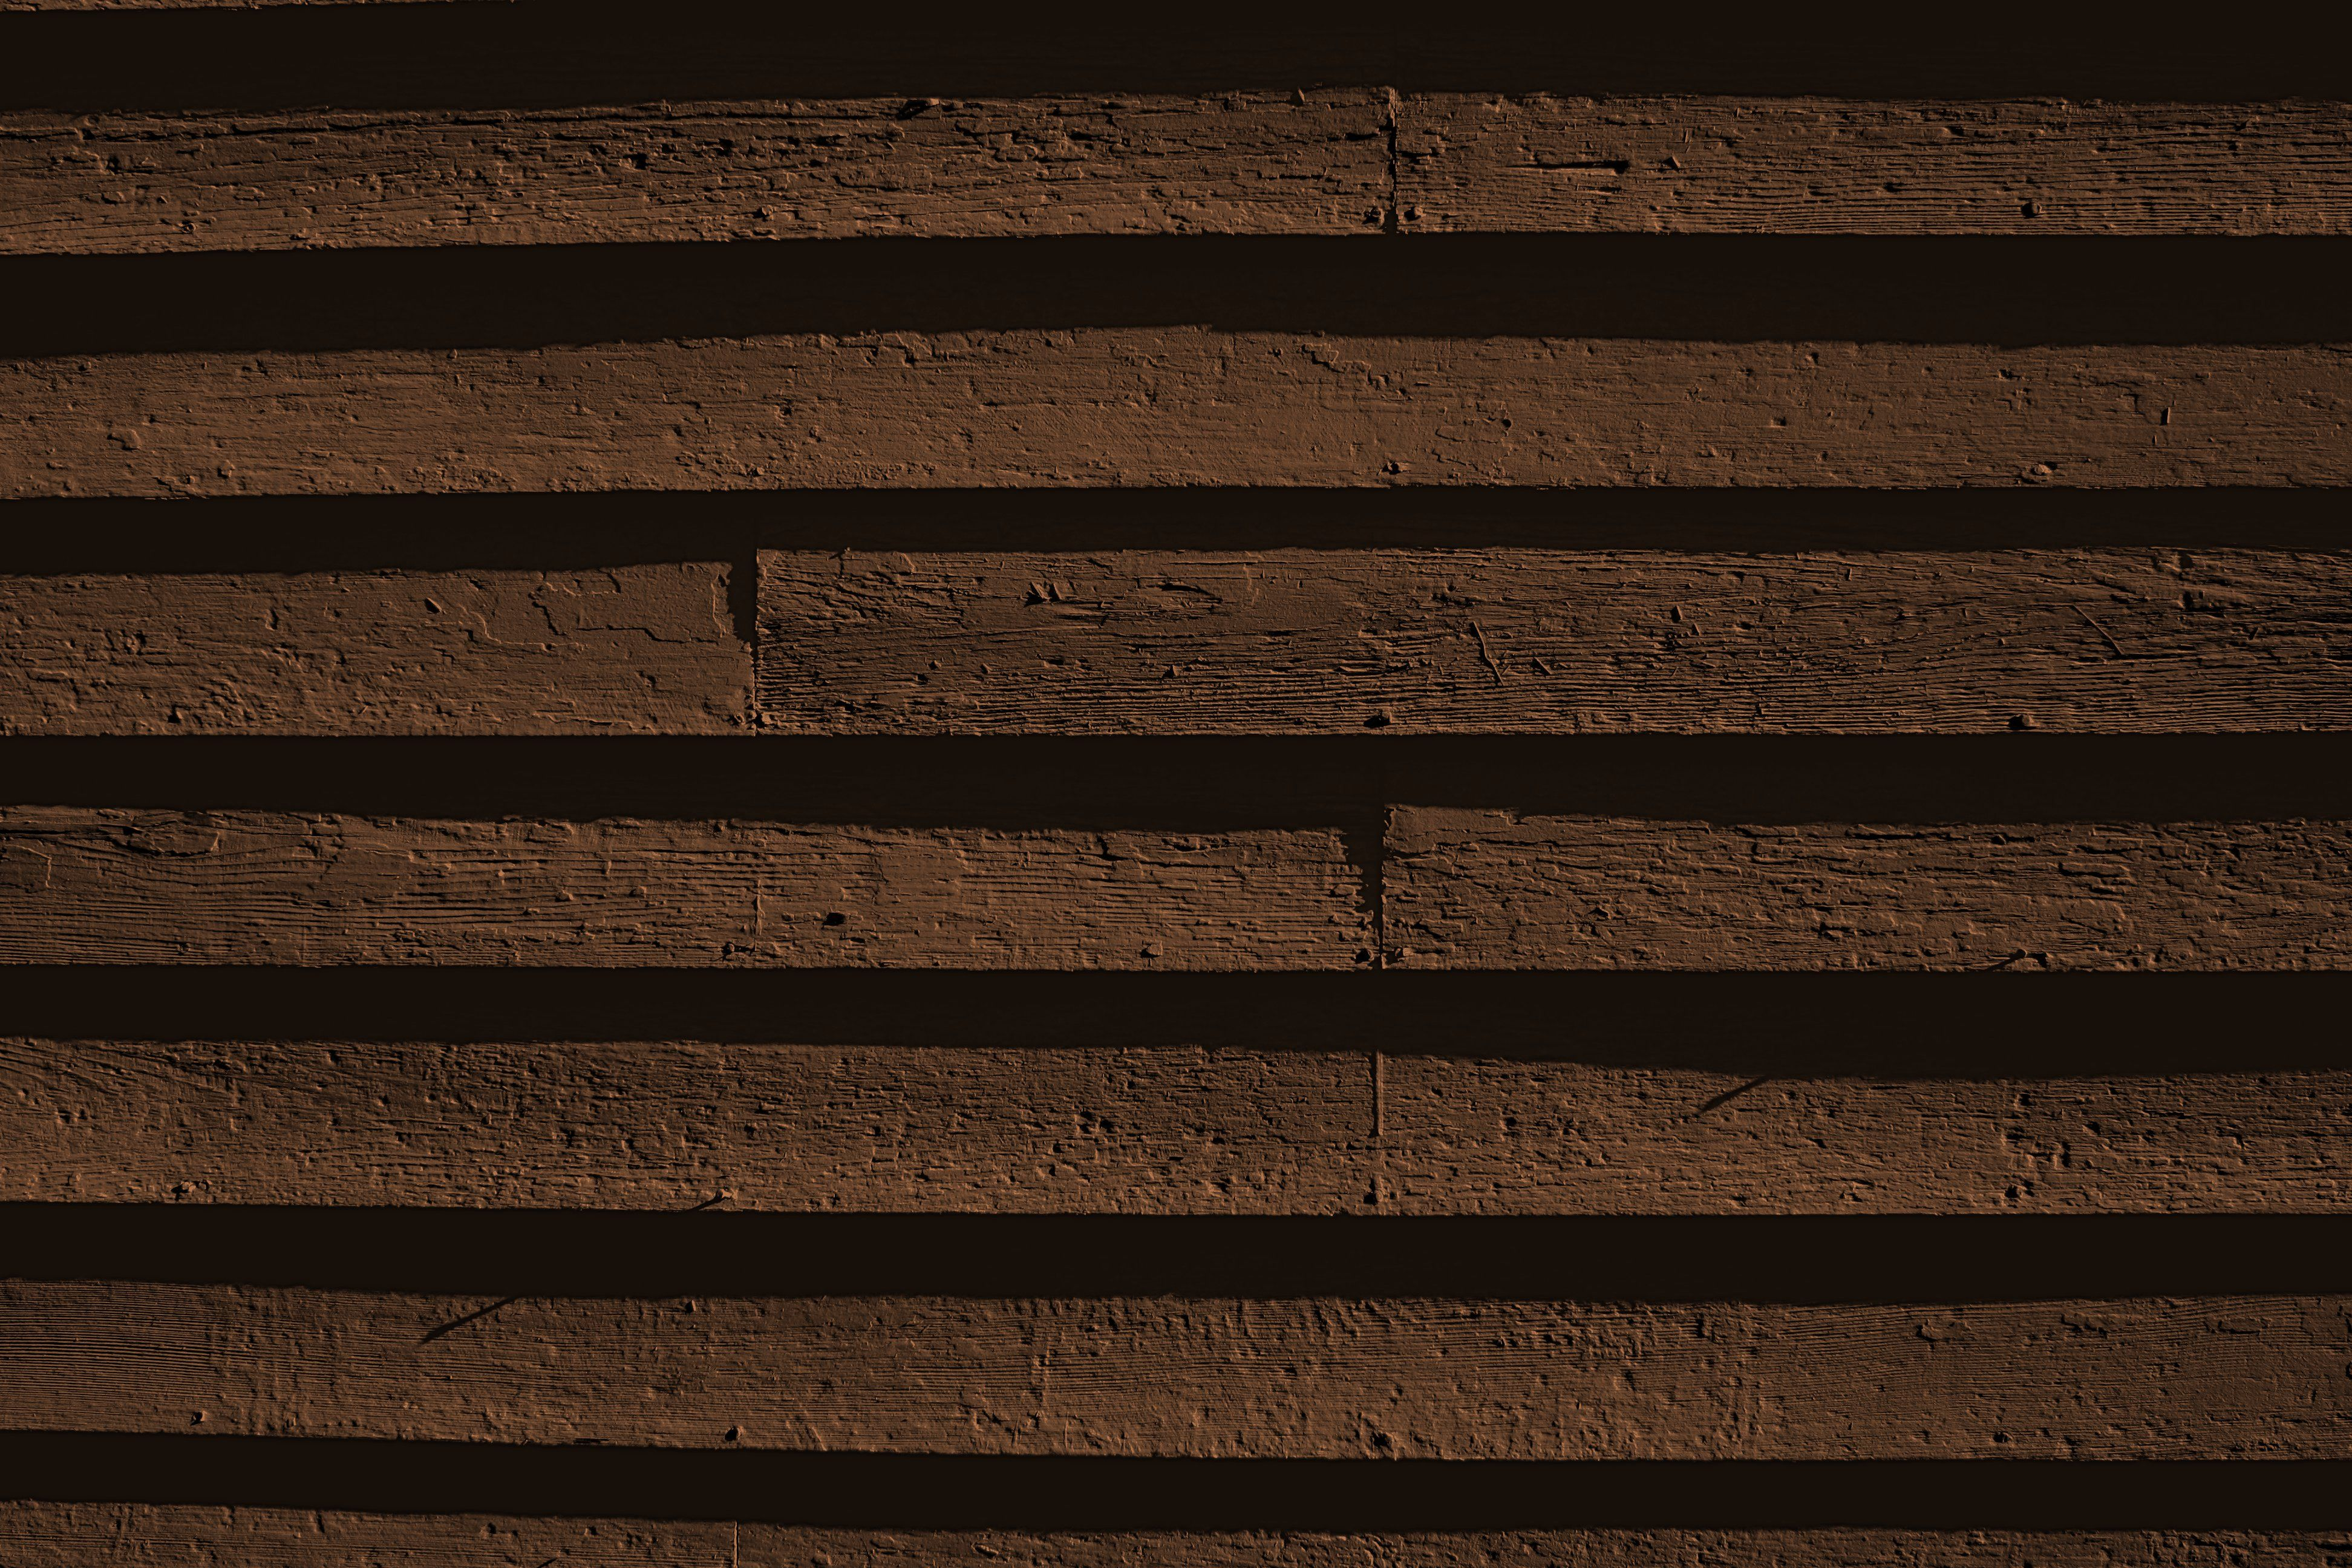 Brown Painted Wooden Siding Texture Picture Free Photograph